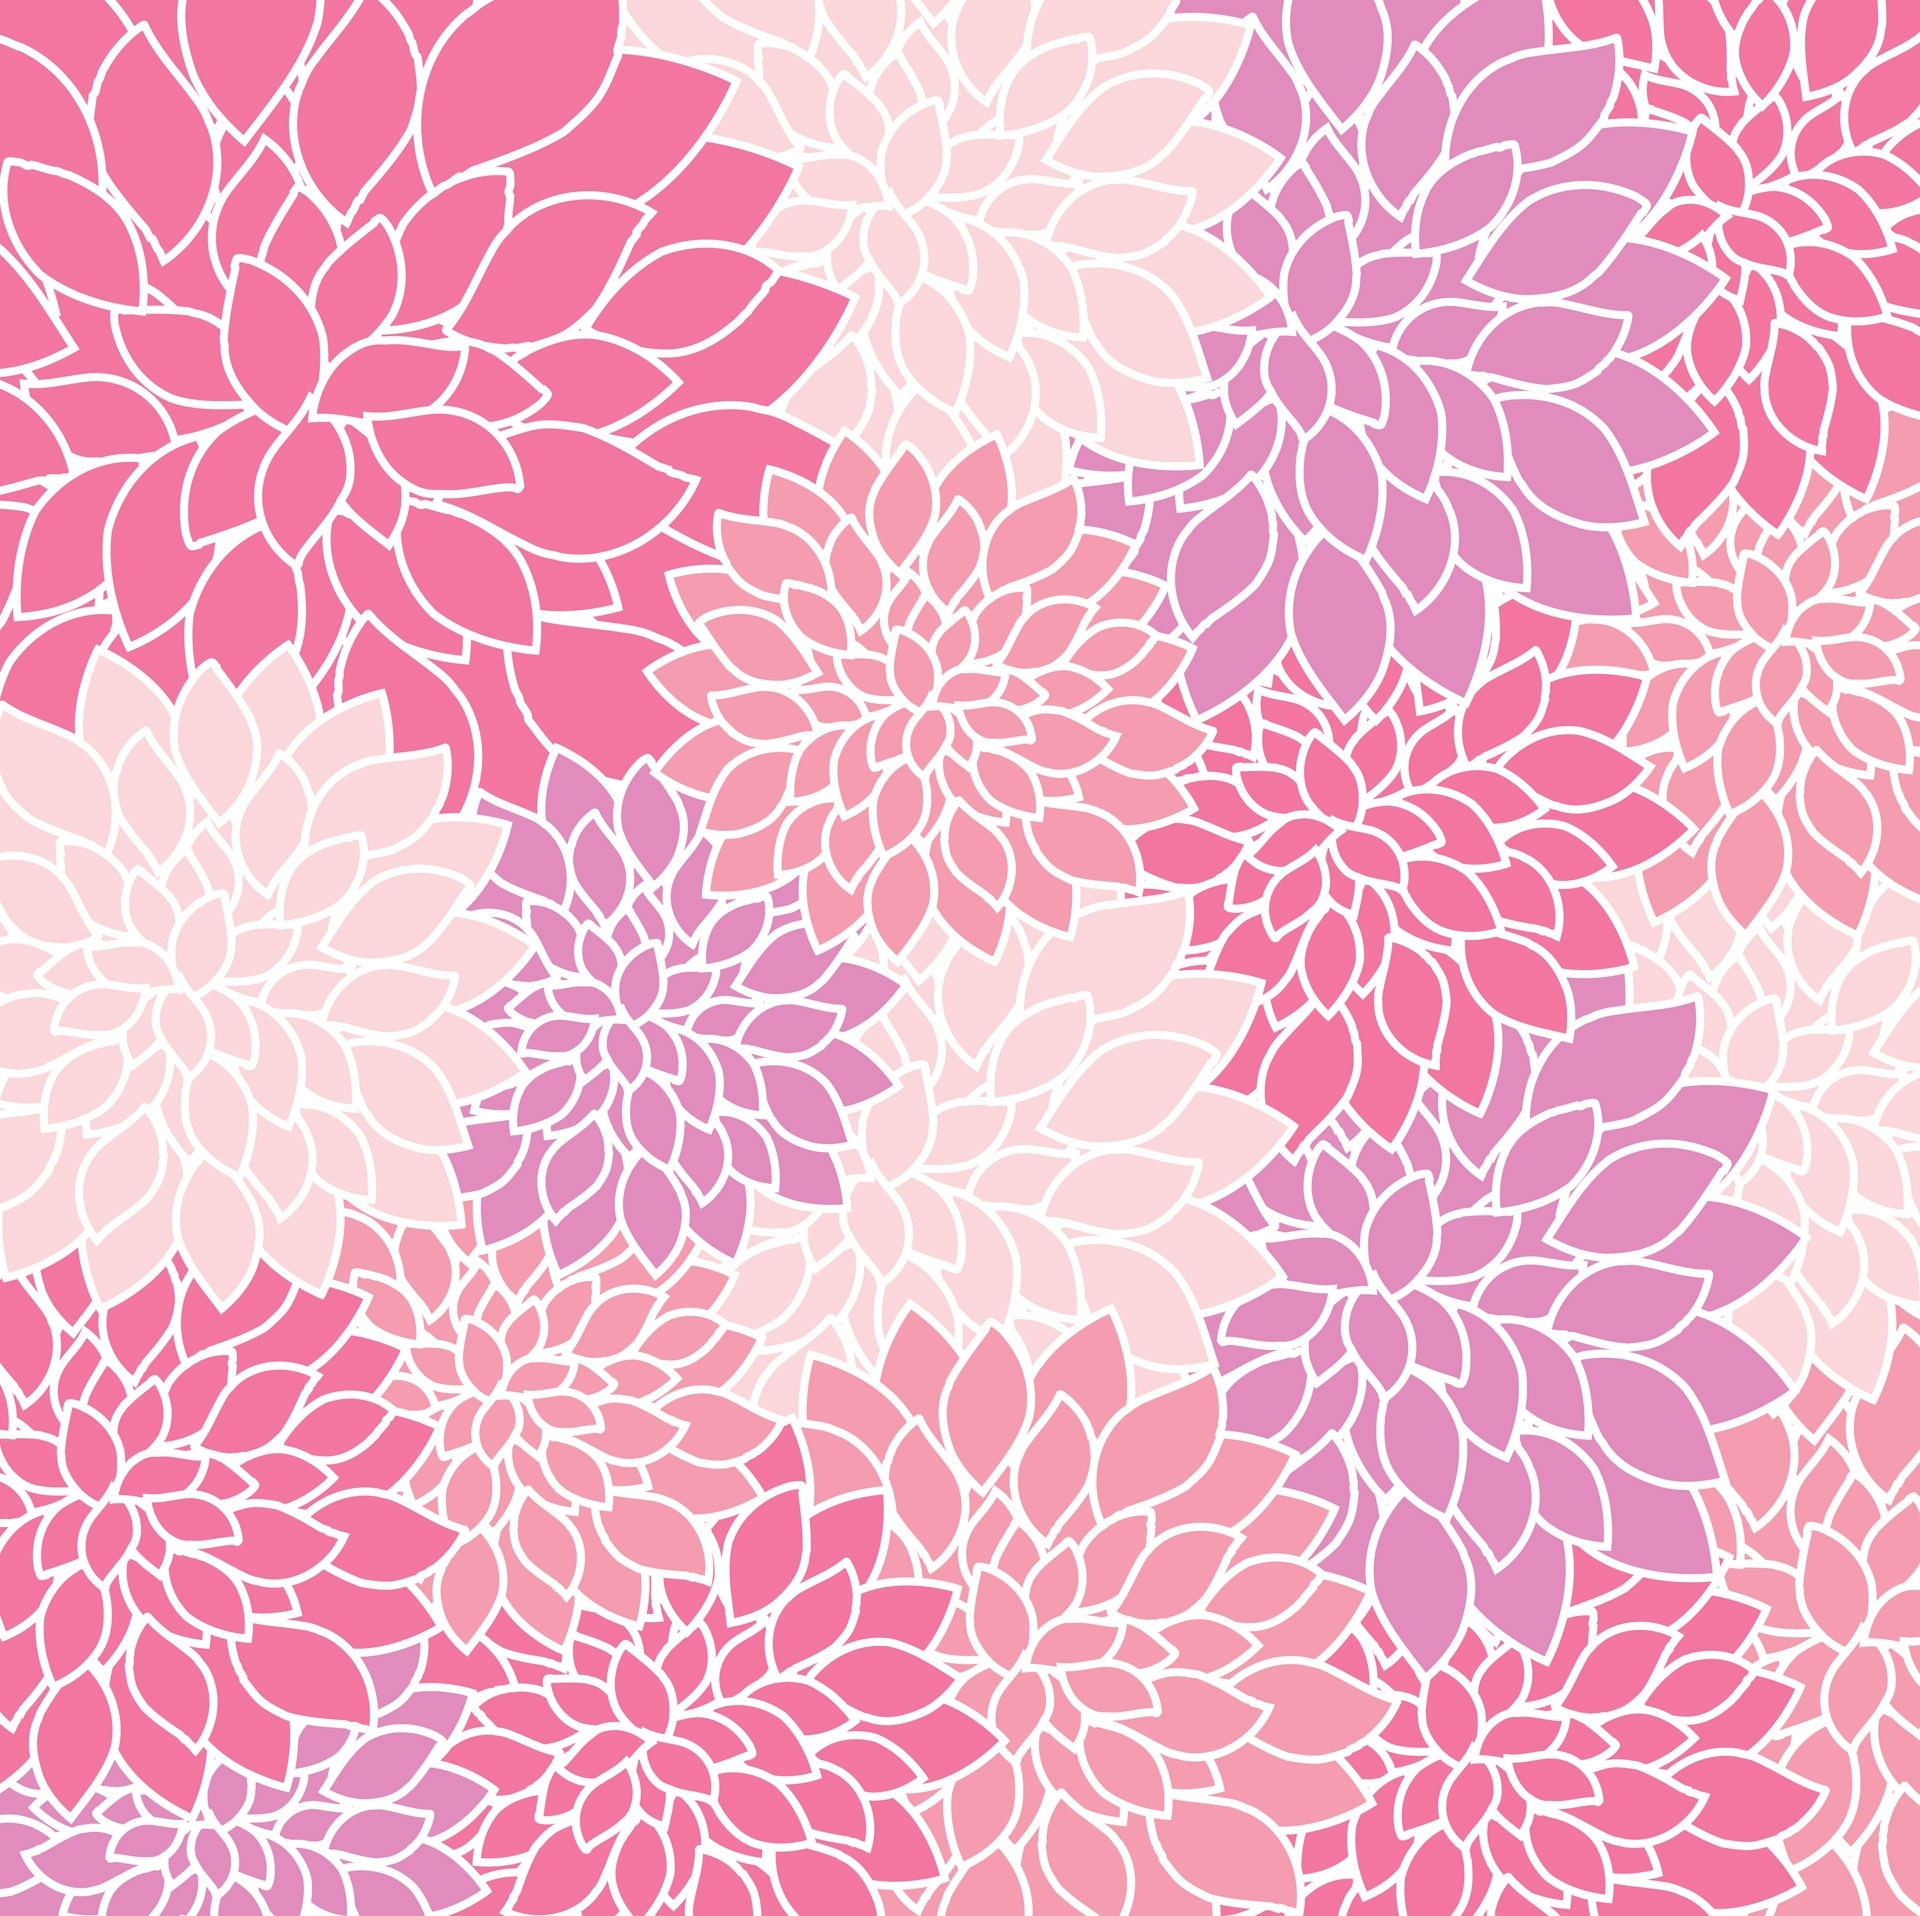 vintage floral wallpaper background free stock photo - public domain